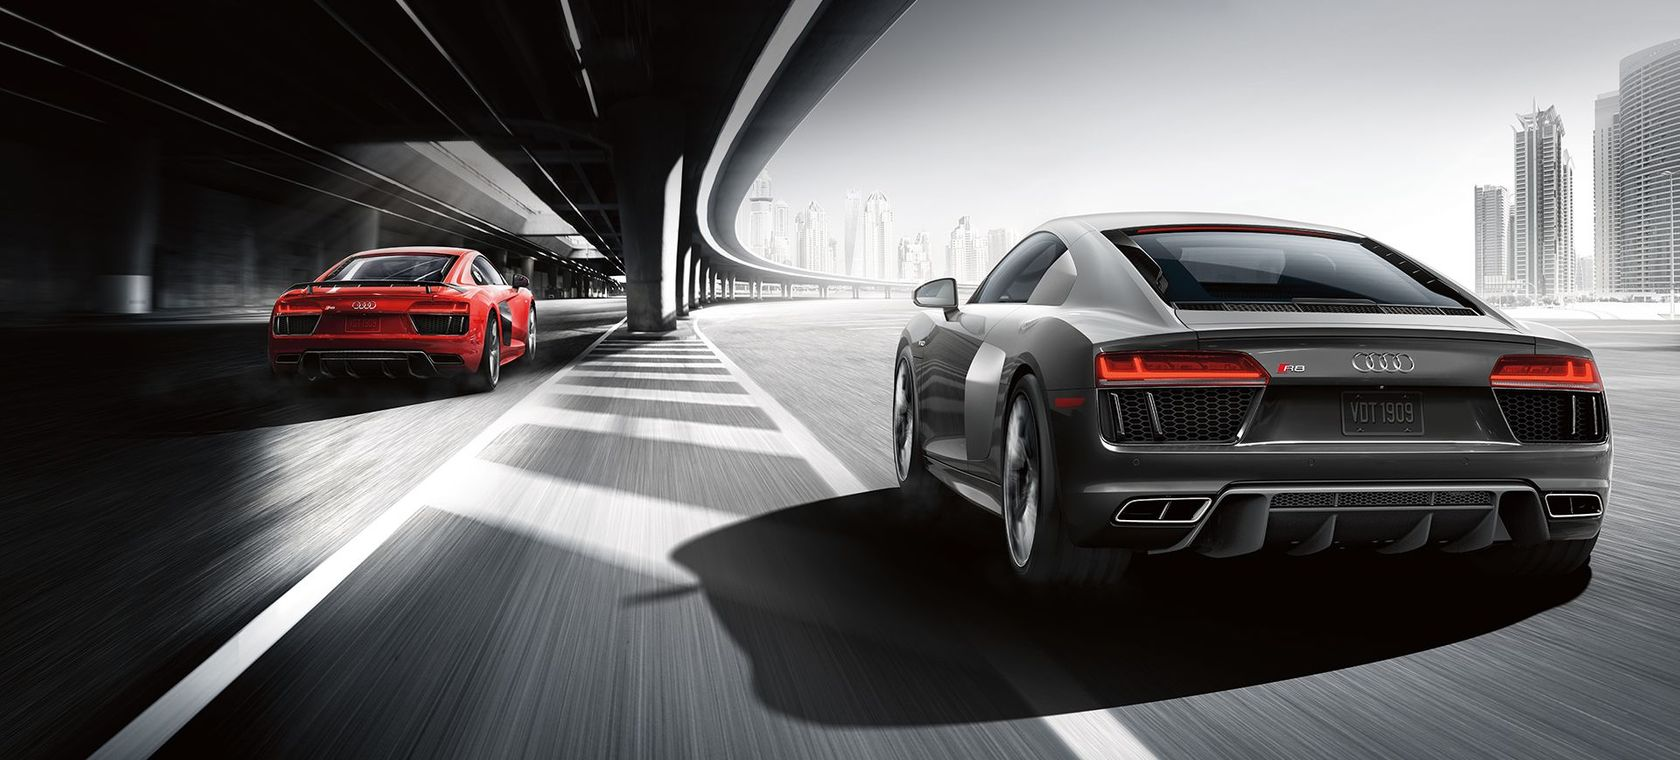 Audi R8 models with quattro® all-wheel drive